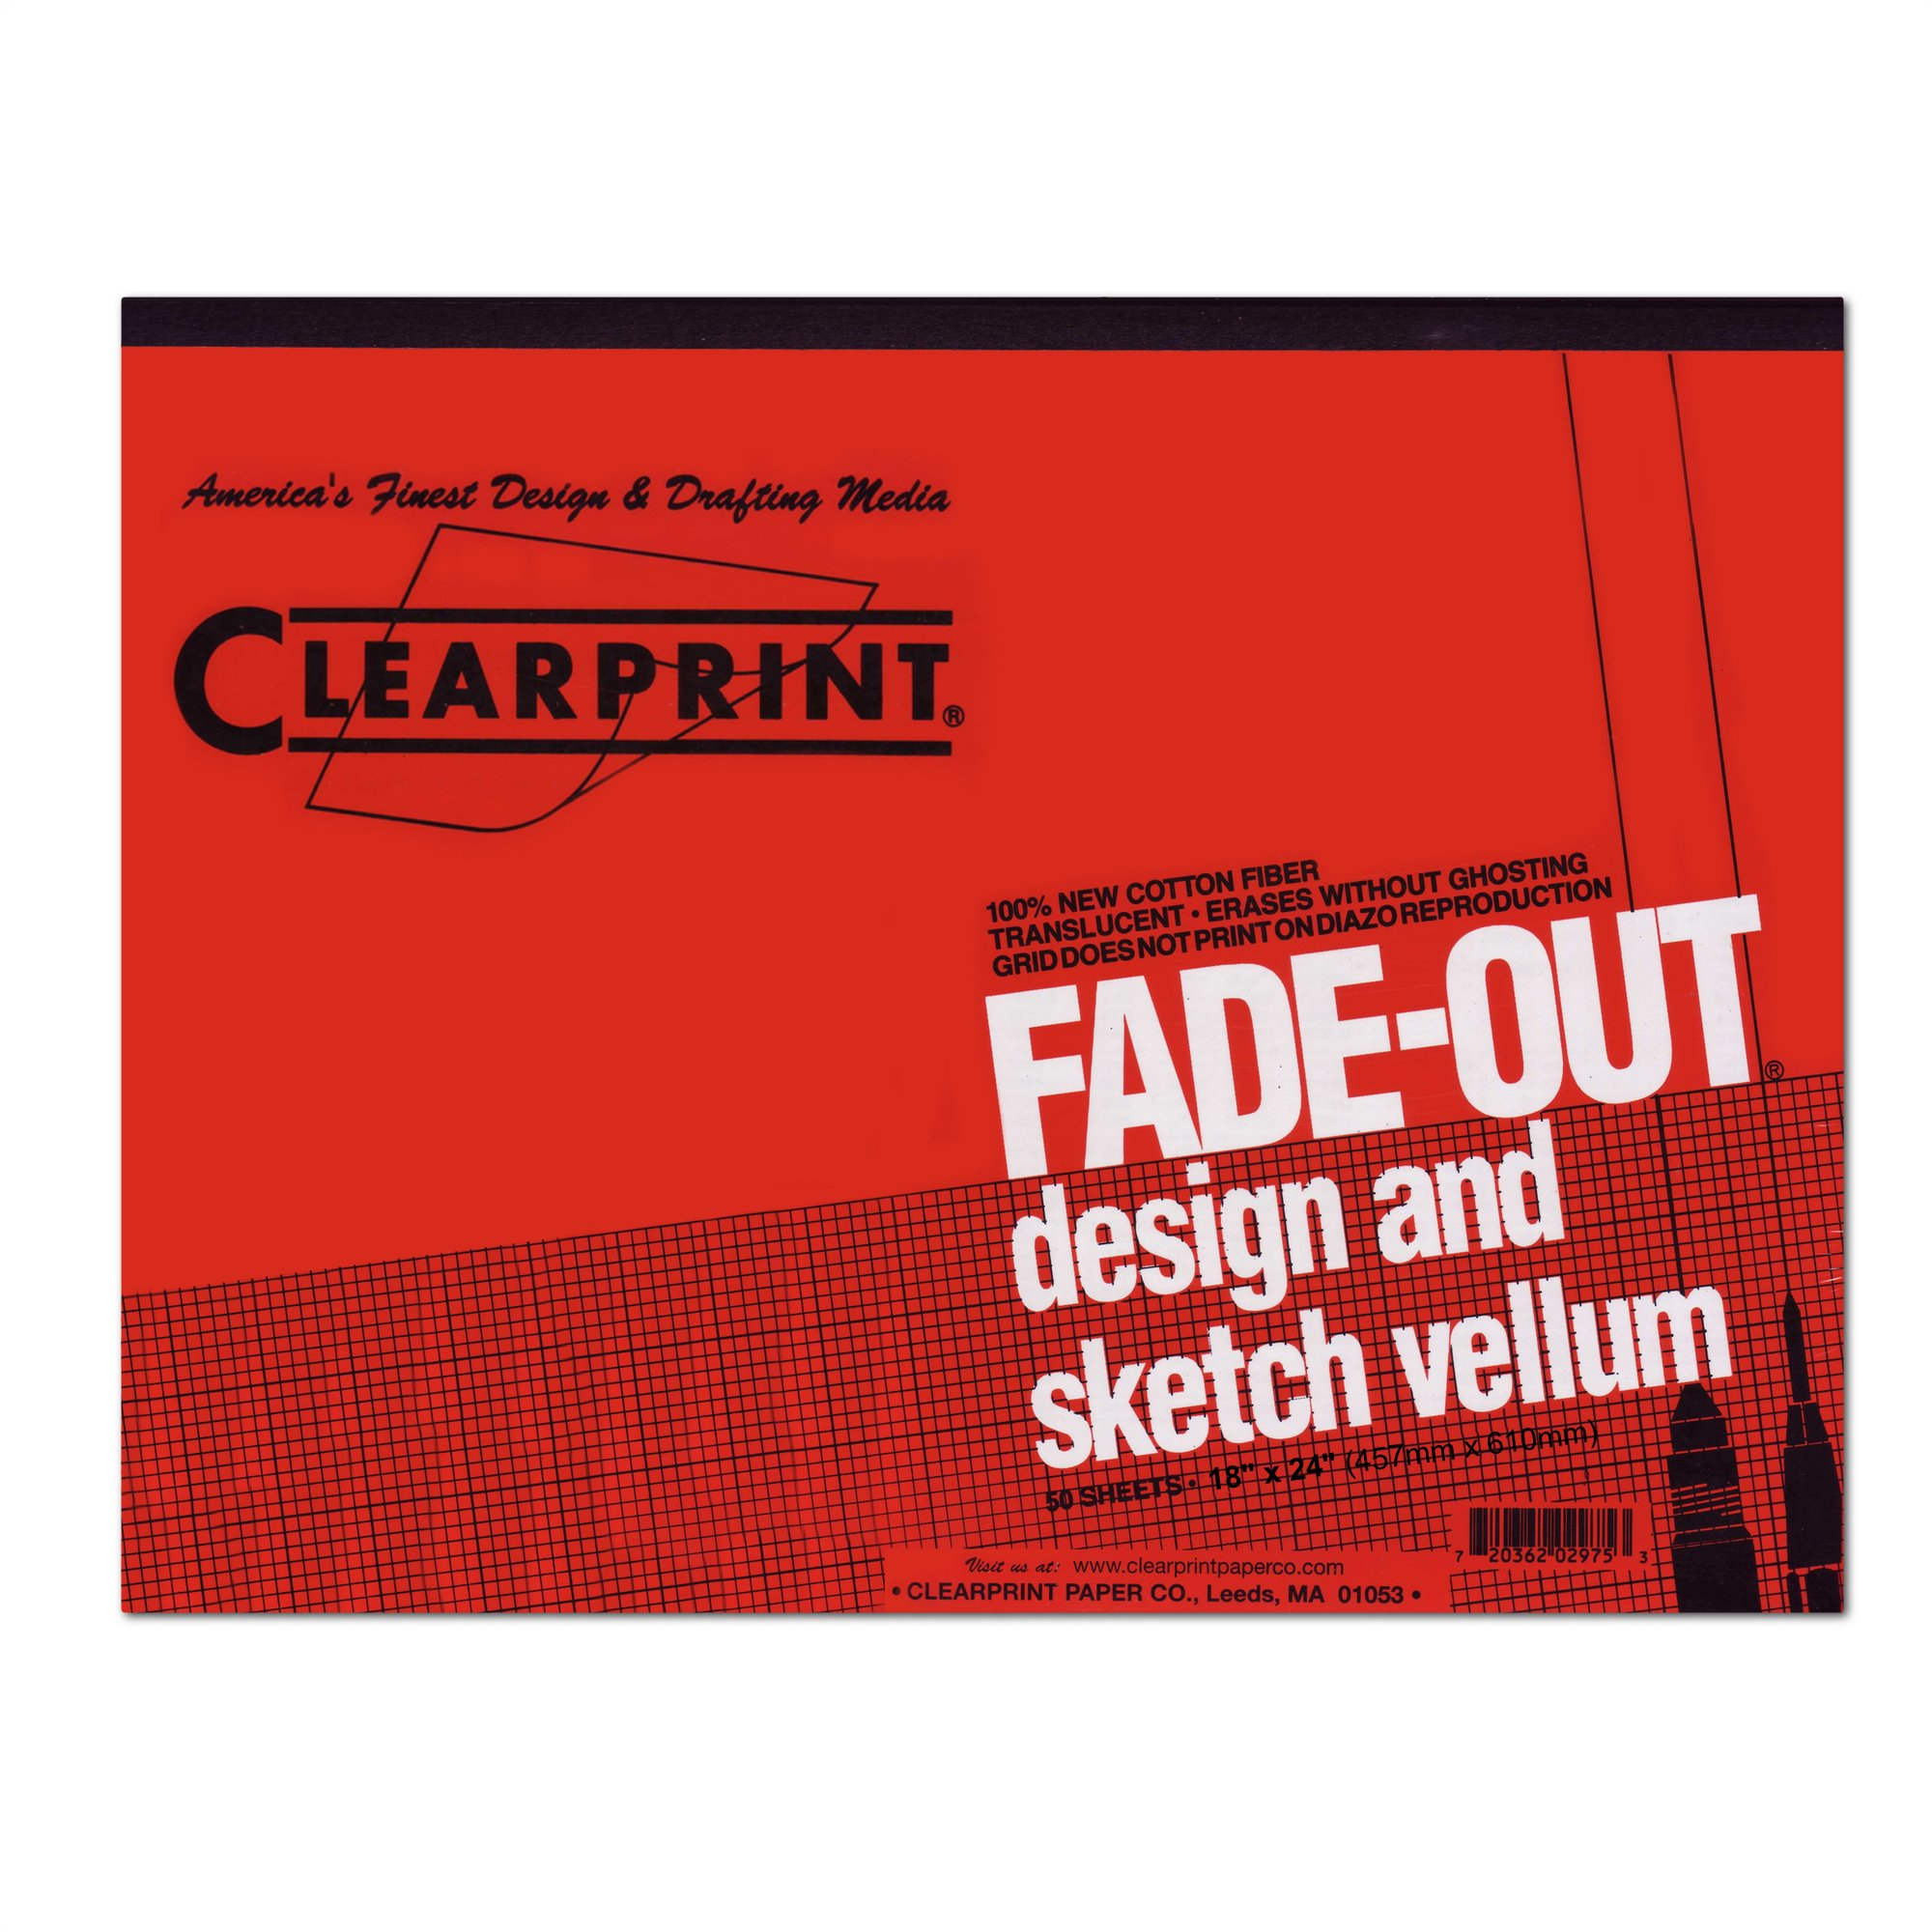 Clearprint 1000H Design Vellum Pad with Printed Fade-Out 4x4 Grid, 16 lb, 100% Cotton, 18 x 24 Inches, 50 Sheets, Translucent White, 1 Each (10004422) by Clearprint